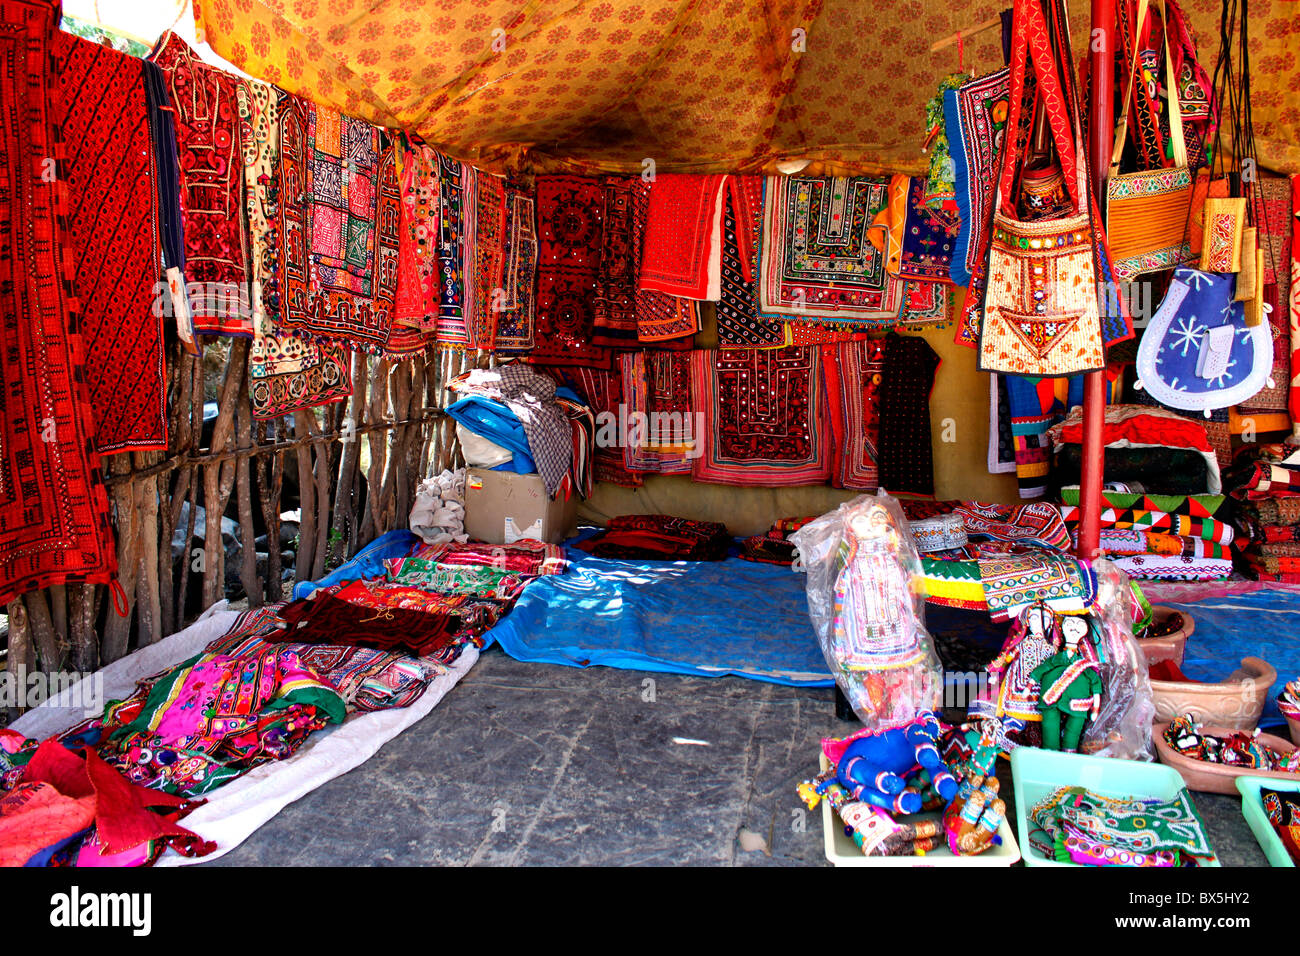 Handicraft shop in Kutch, Gujarat, india - Stock Image